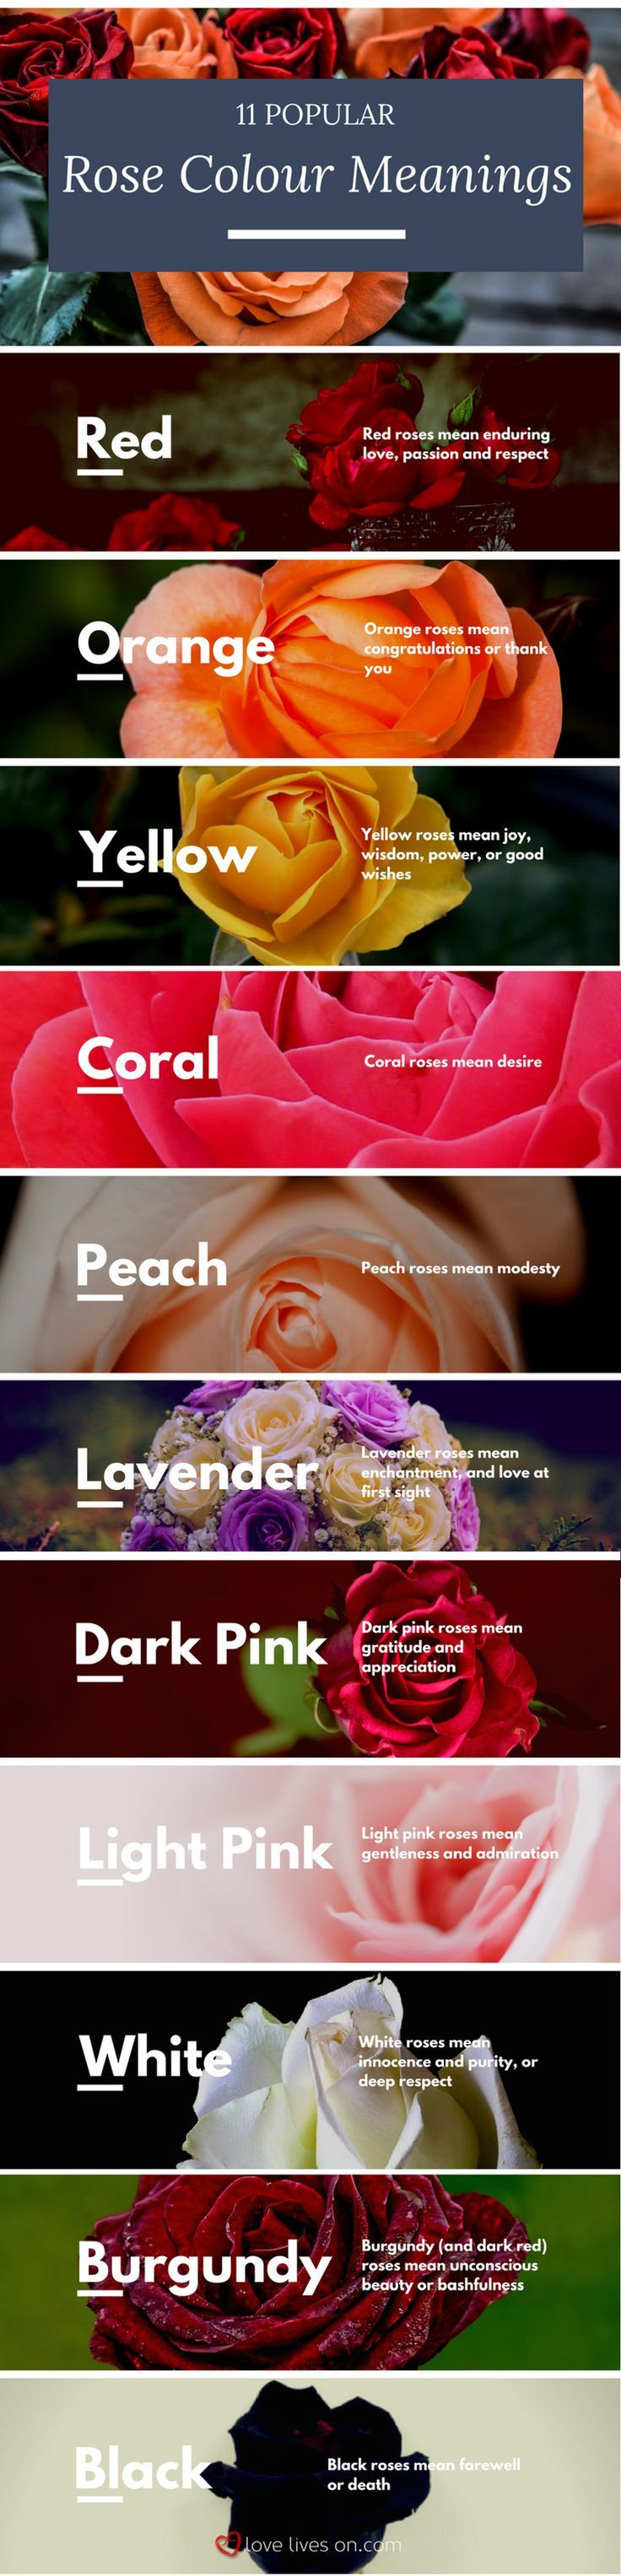 Bring even more meaning to your funeral arrangements by knowing the colour meanings of roses with this infographic of 11 popular rose colours & their